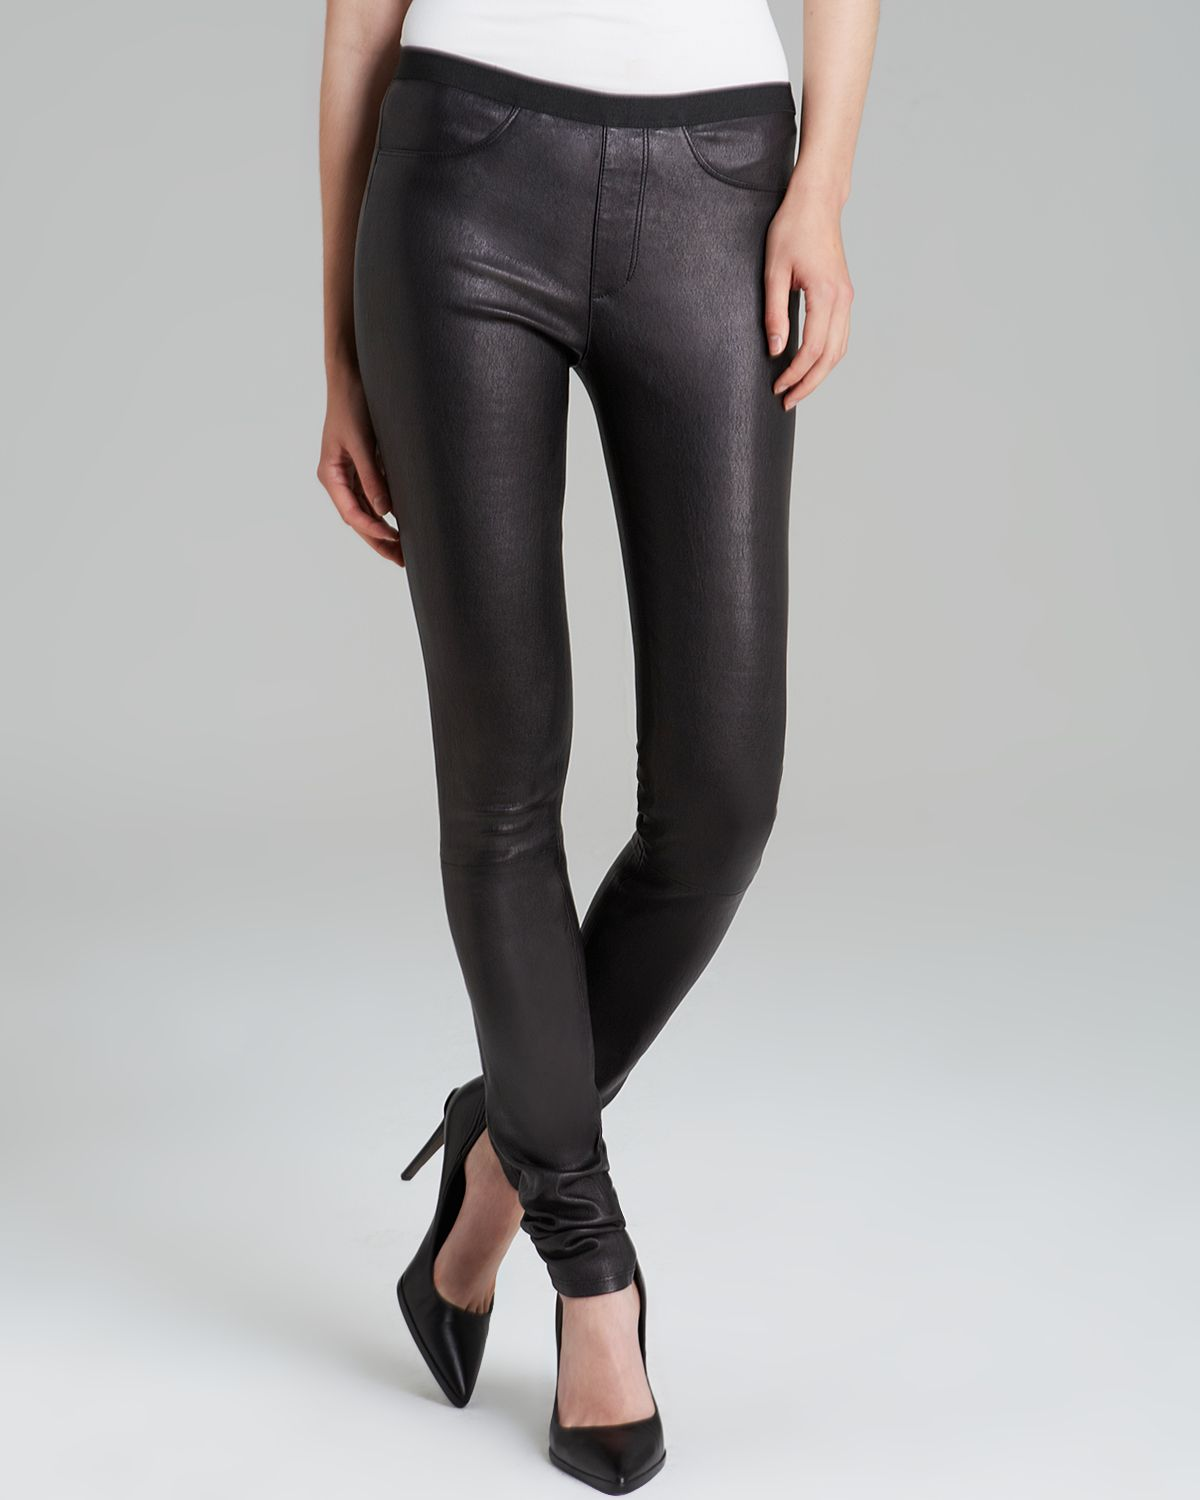 Helmut Lang Pants - Leather Skinny | Bloomingdale's